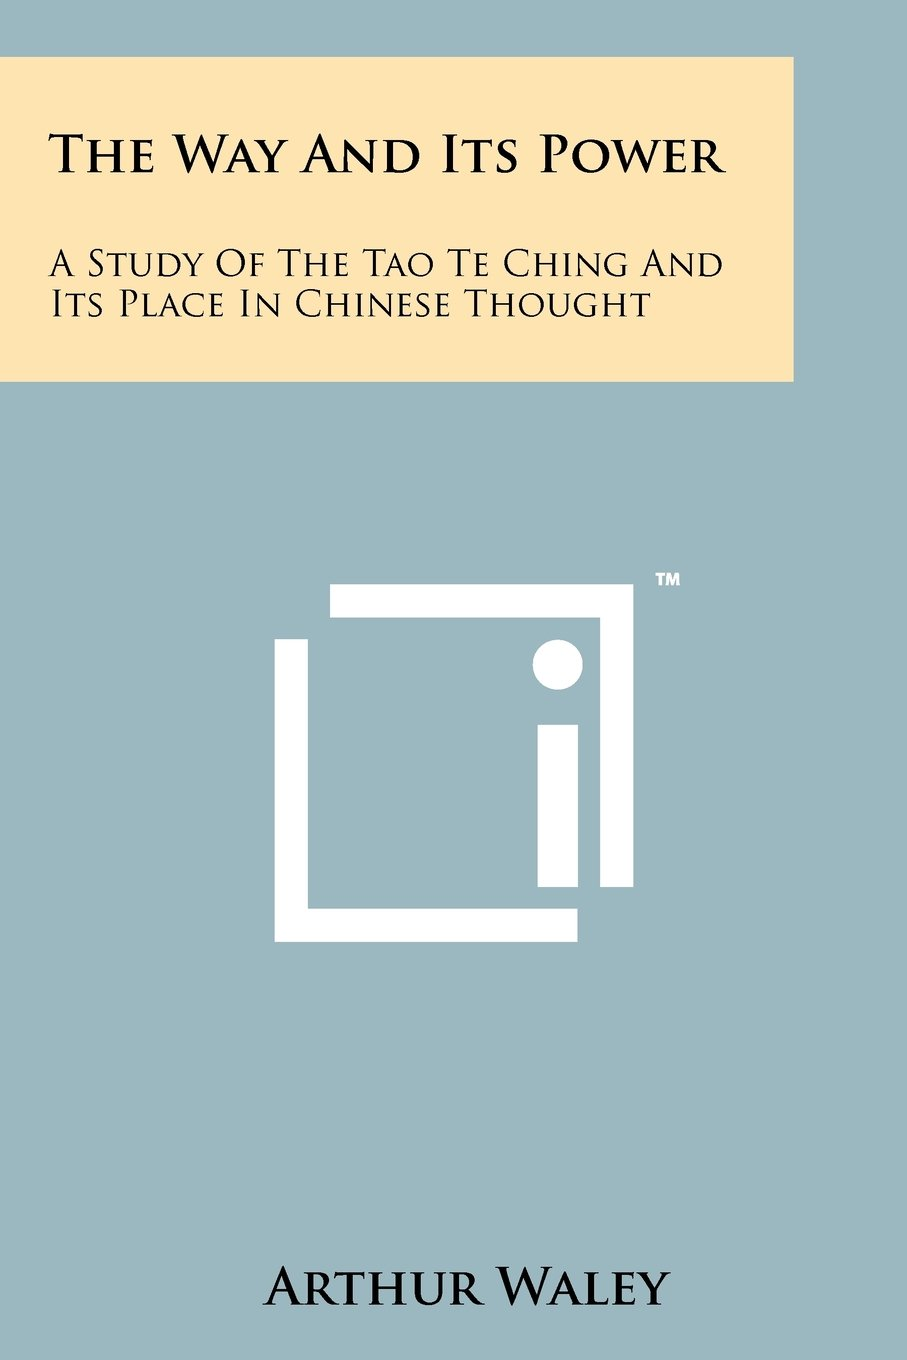 The Way And Its Power: A Study Of The Tao Te Ching And Its Place In Chinese  Thought Paperback – October 15, 2011